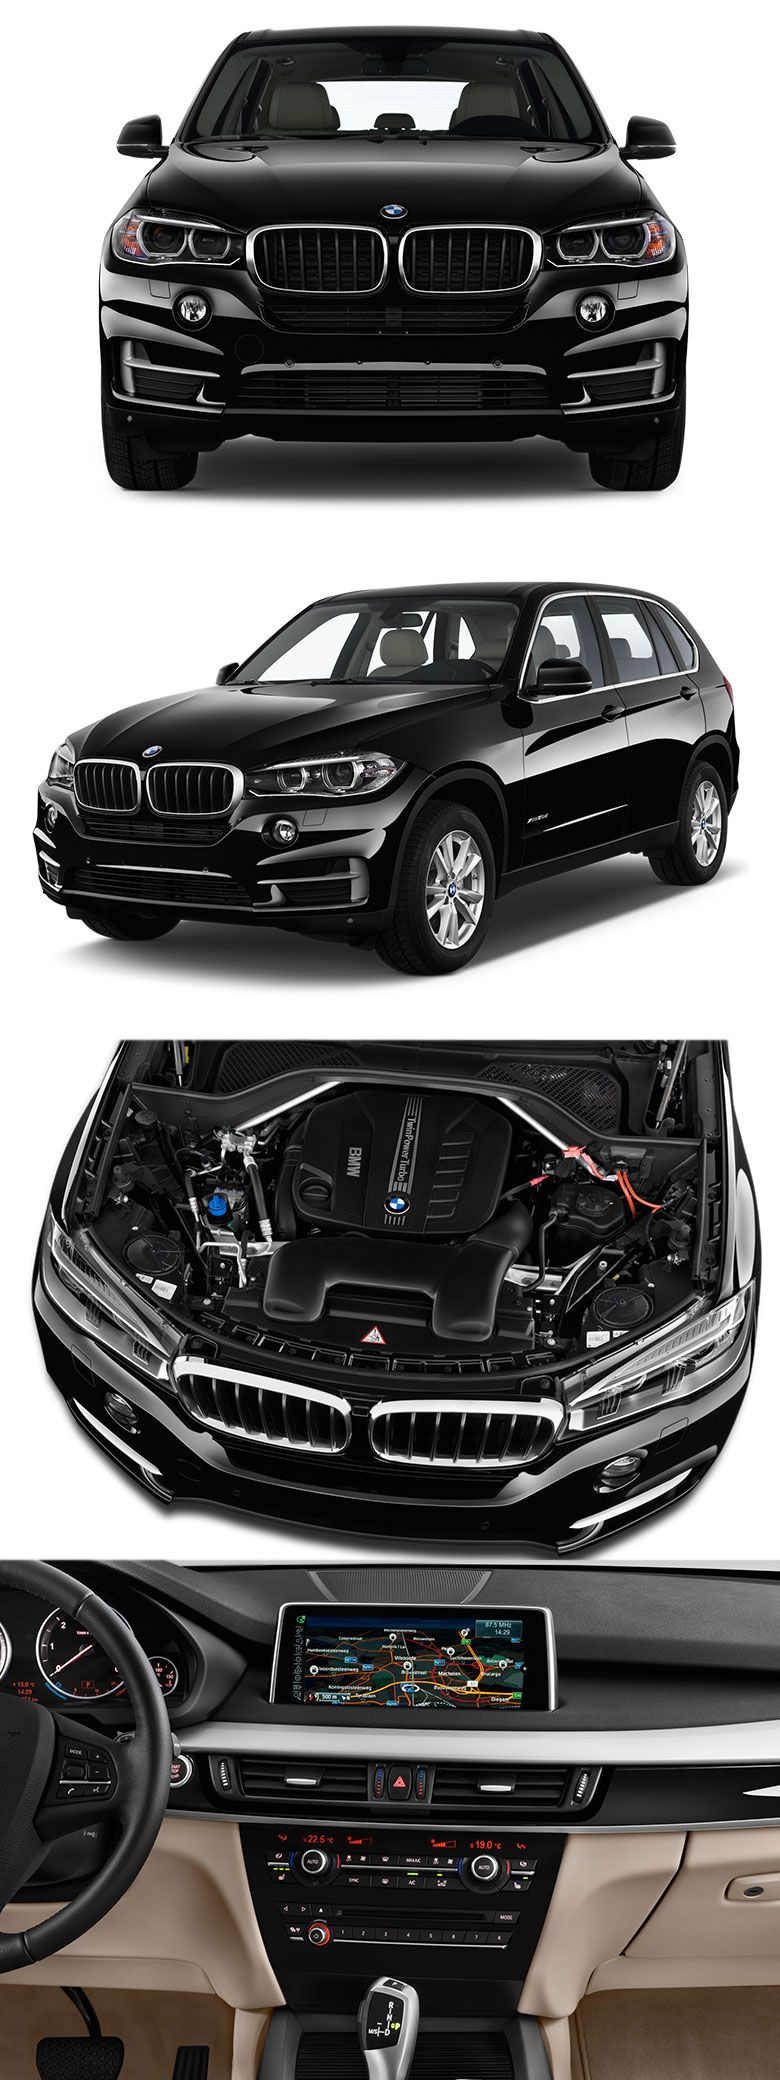 Category Bmw >> Bmw X5 Strong Engine And Luxurious Comfort Https Www Enginetrust